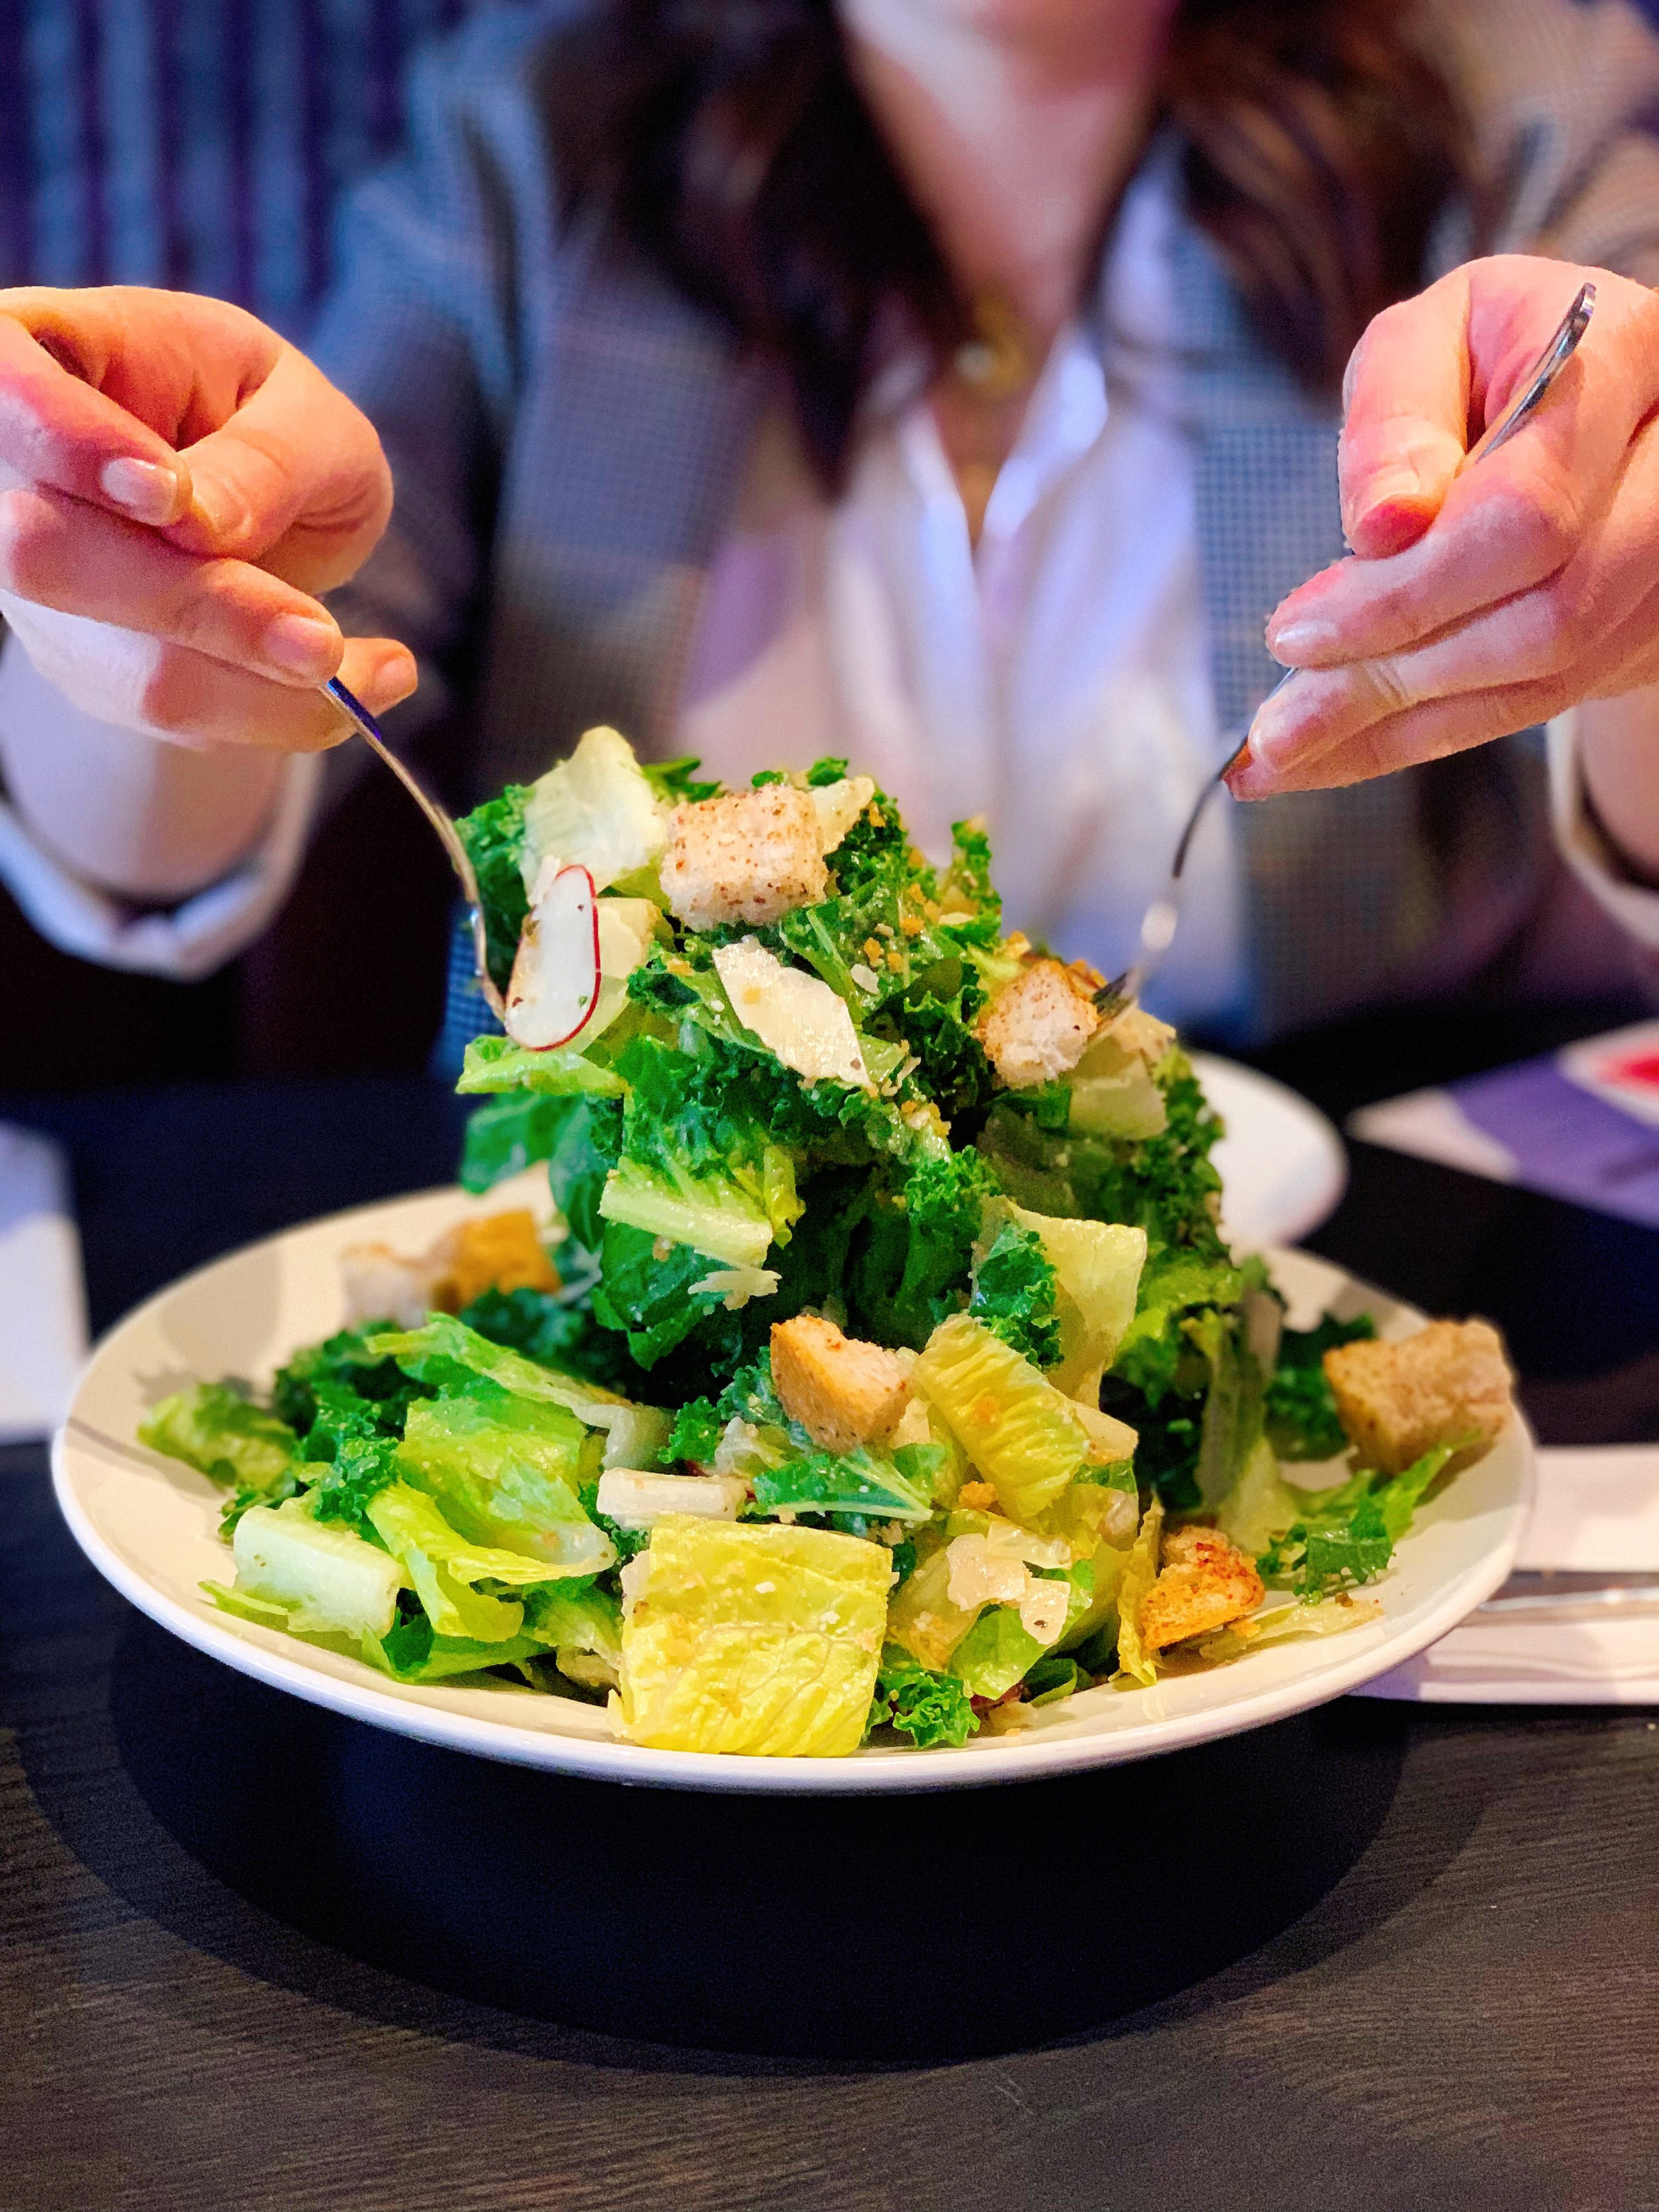 Kale Caesar | Romaine + Green Kale + Radishes + Toasted Panko Breadcrumbs + Shaved Romano + Pizza Croutons + Spicy Caesar dressing